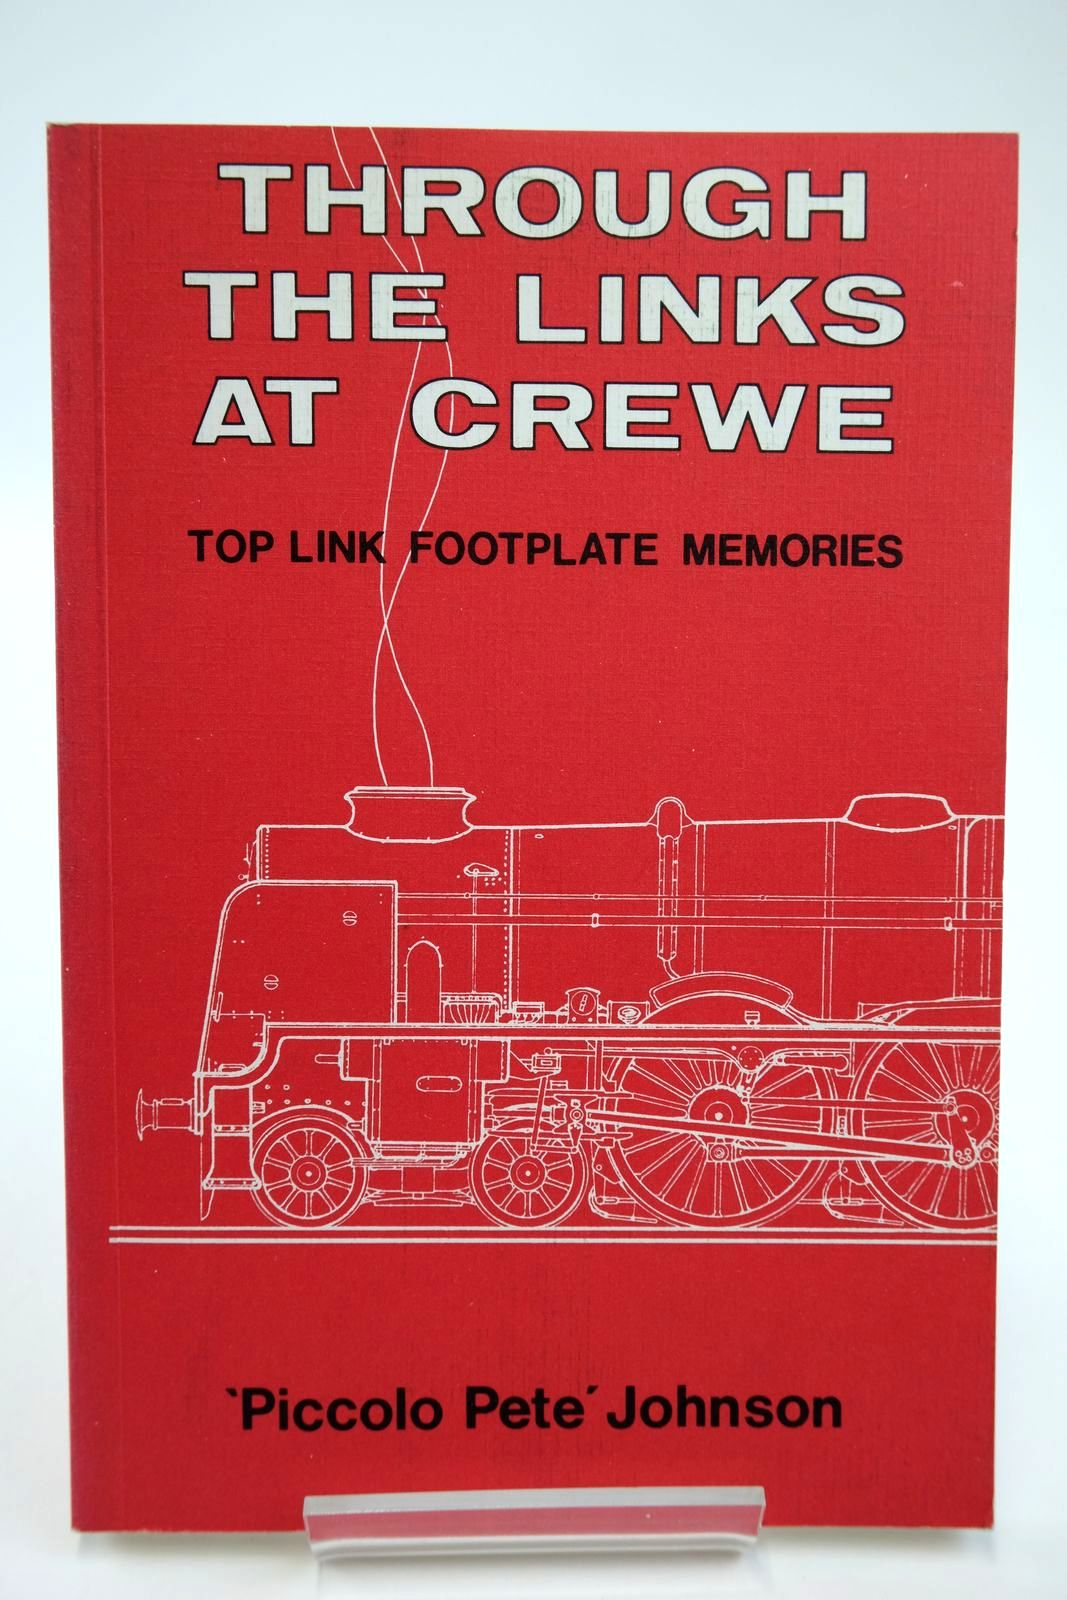 Photo of THROUGH THE LINKS AT CREWE TOP LINK FOOTPLATE MEMORIES- Stock Number: 2133718